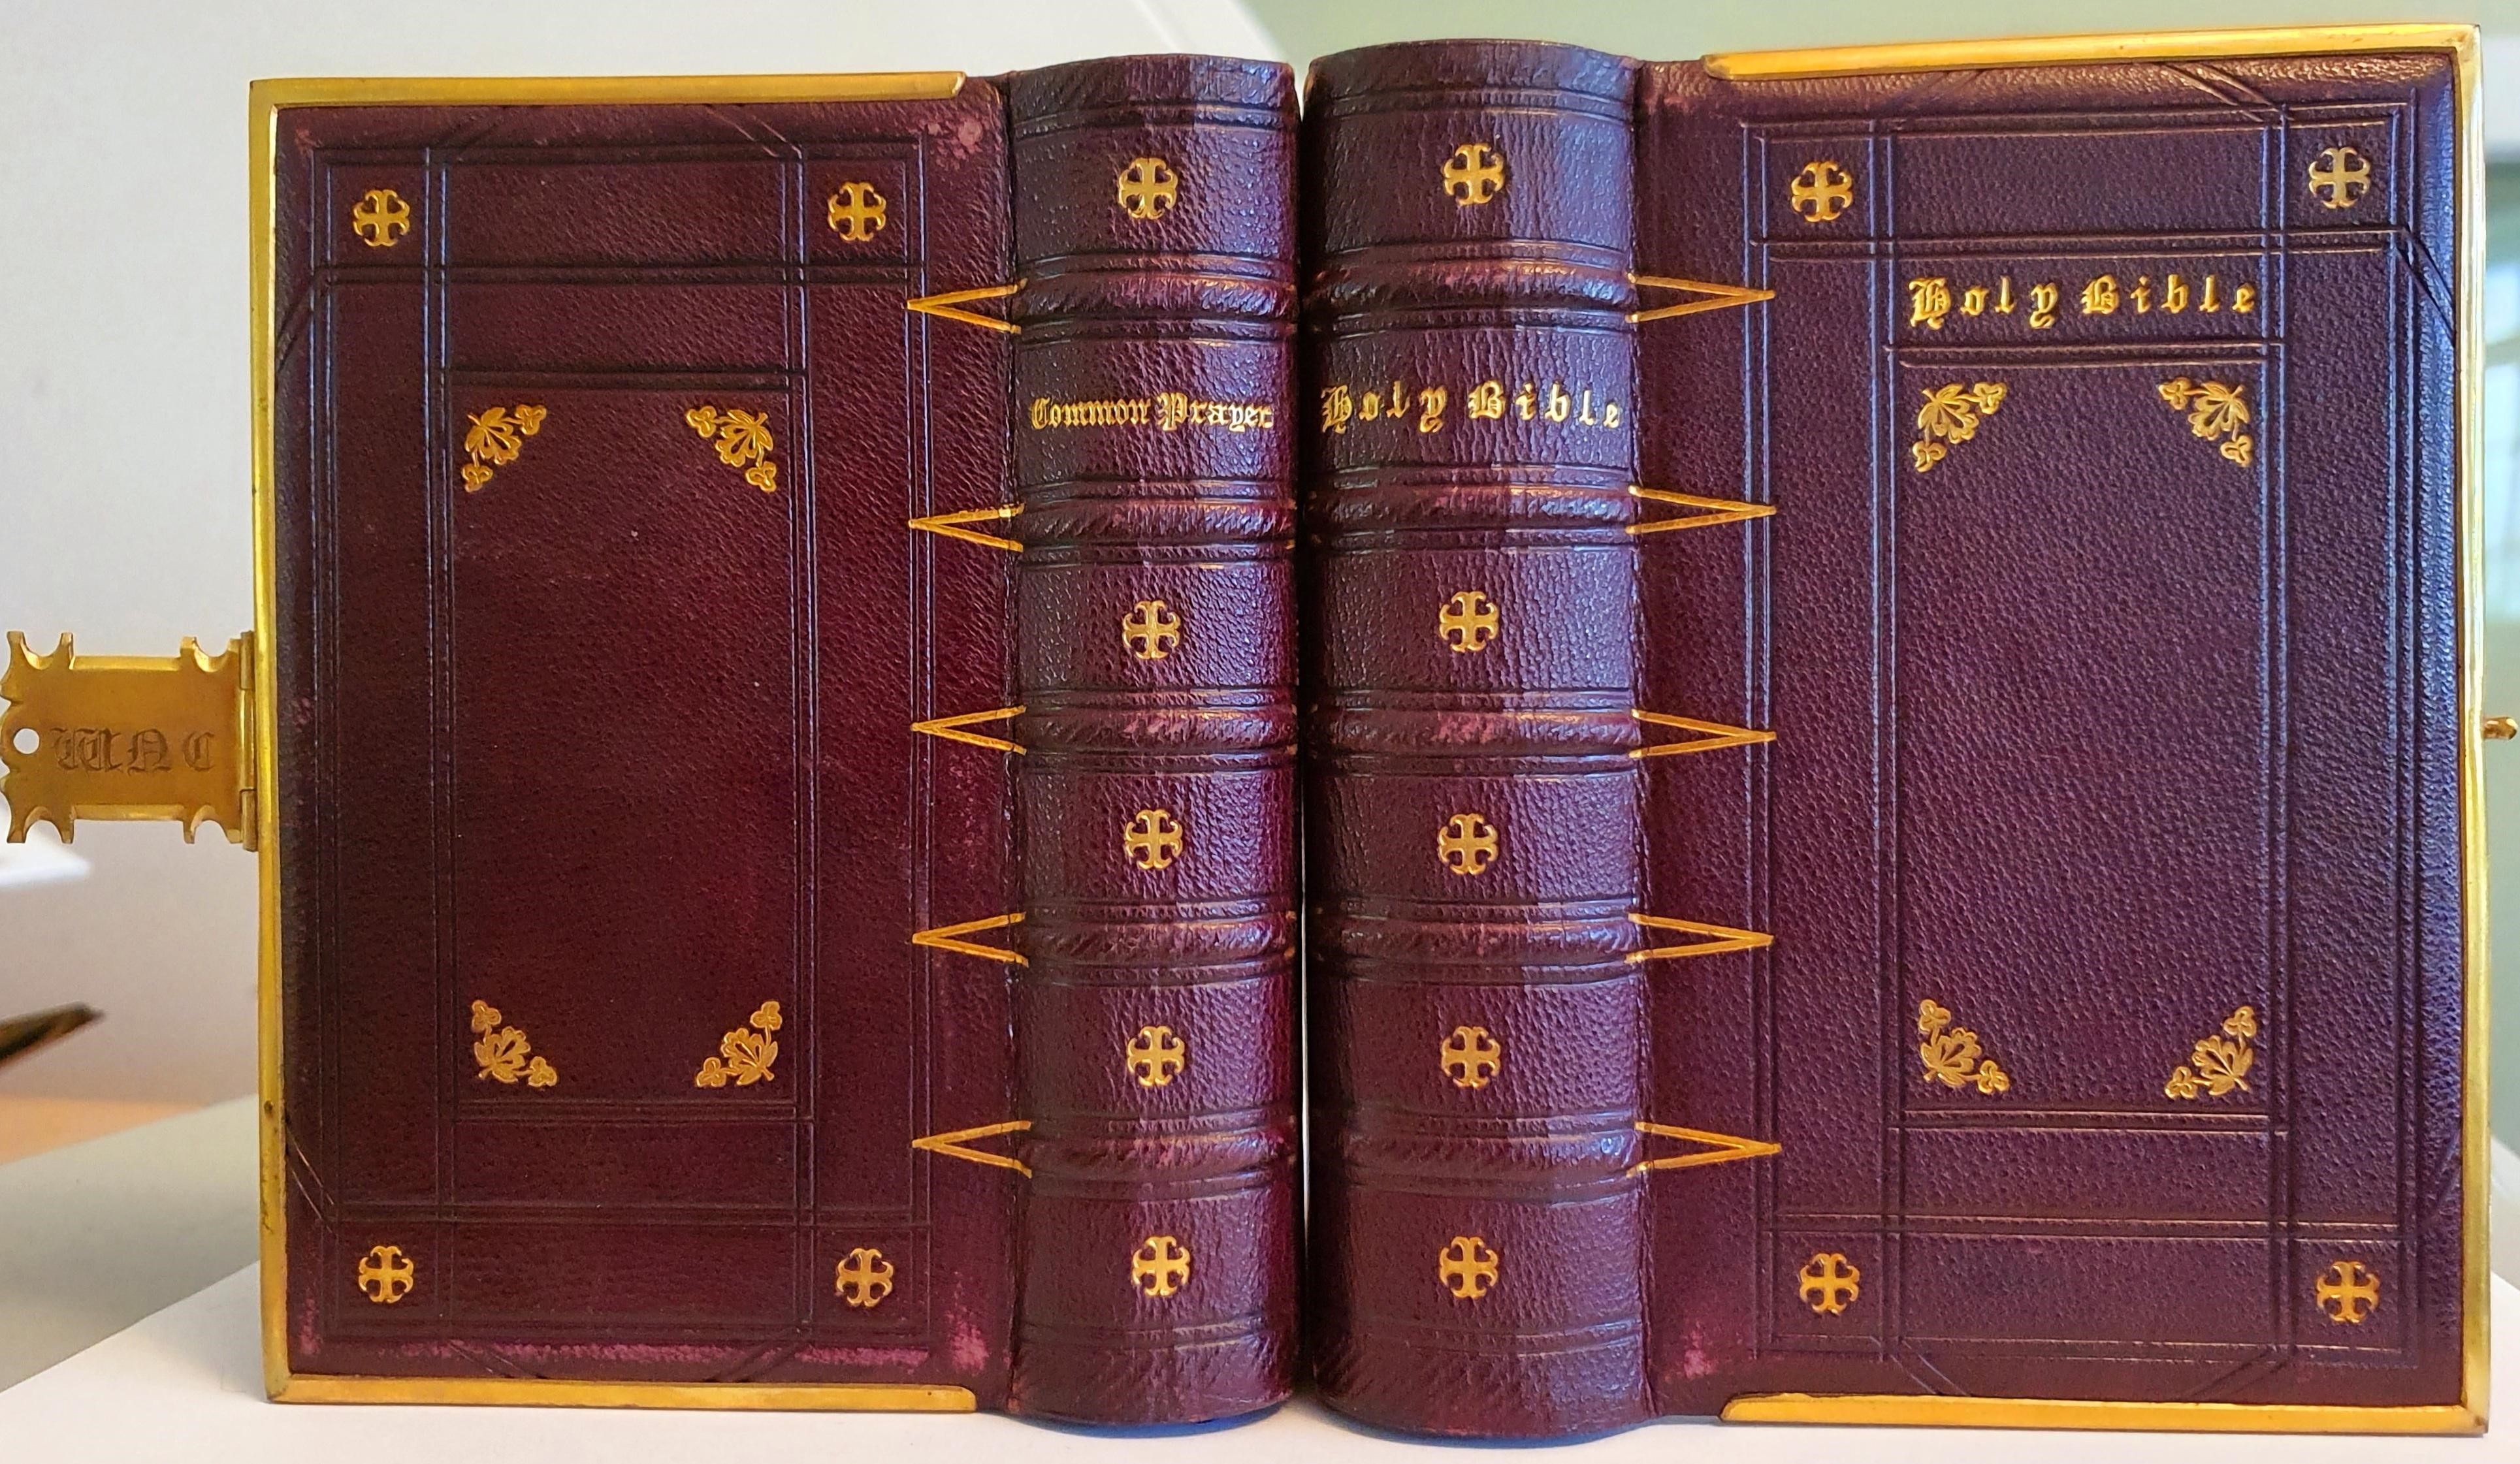 Image for The Holy Bible, Containing The Old And New testaments... / The Book Of Common Prayer, And Administration Of The Sacraments....